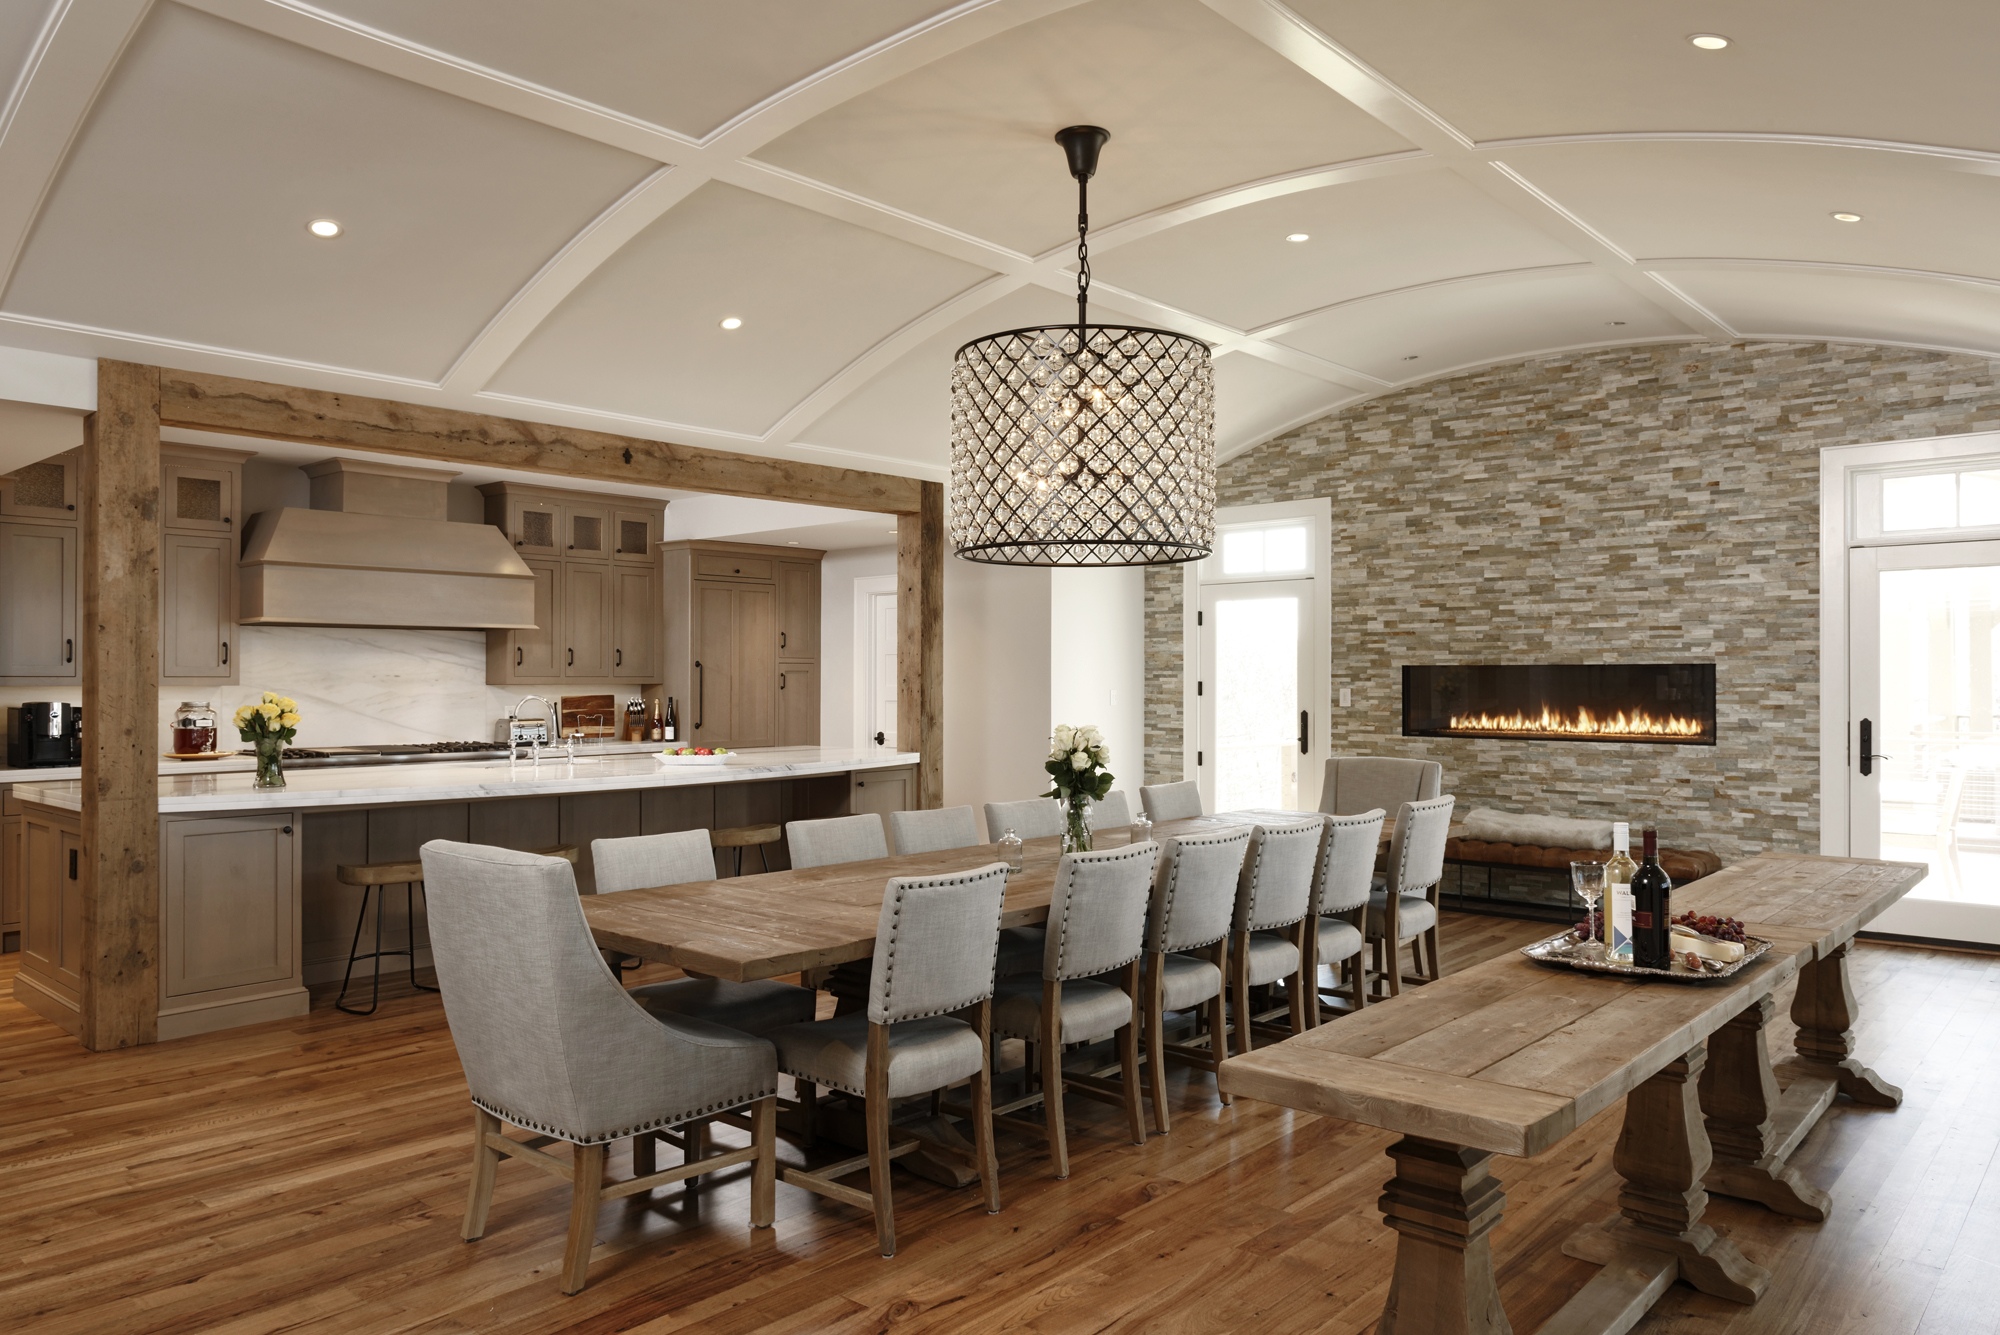 Loudoun county whole house renovation and entertaining for Dining room renovation